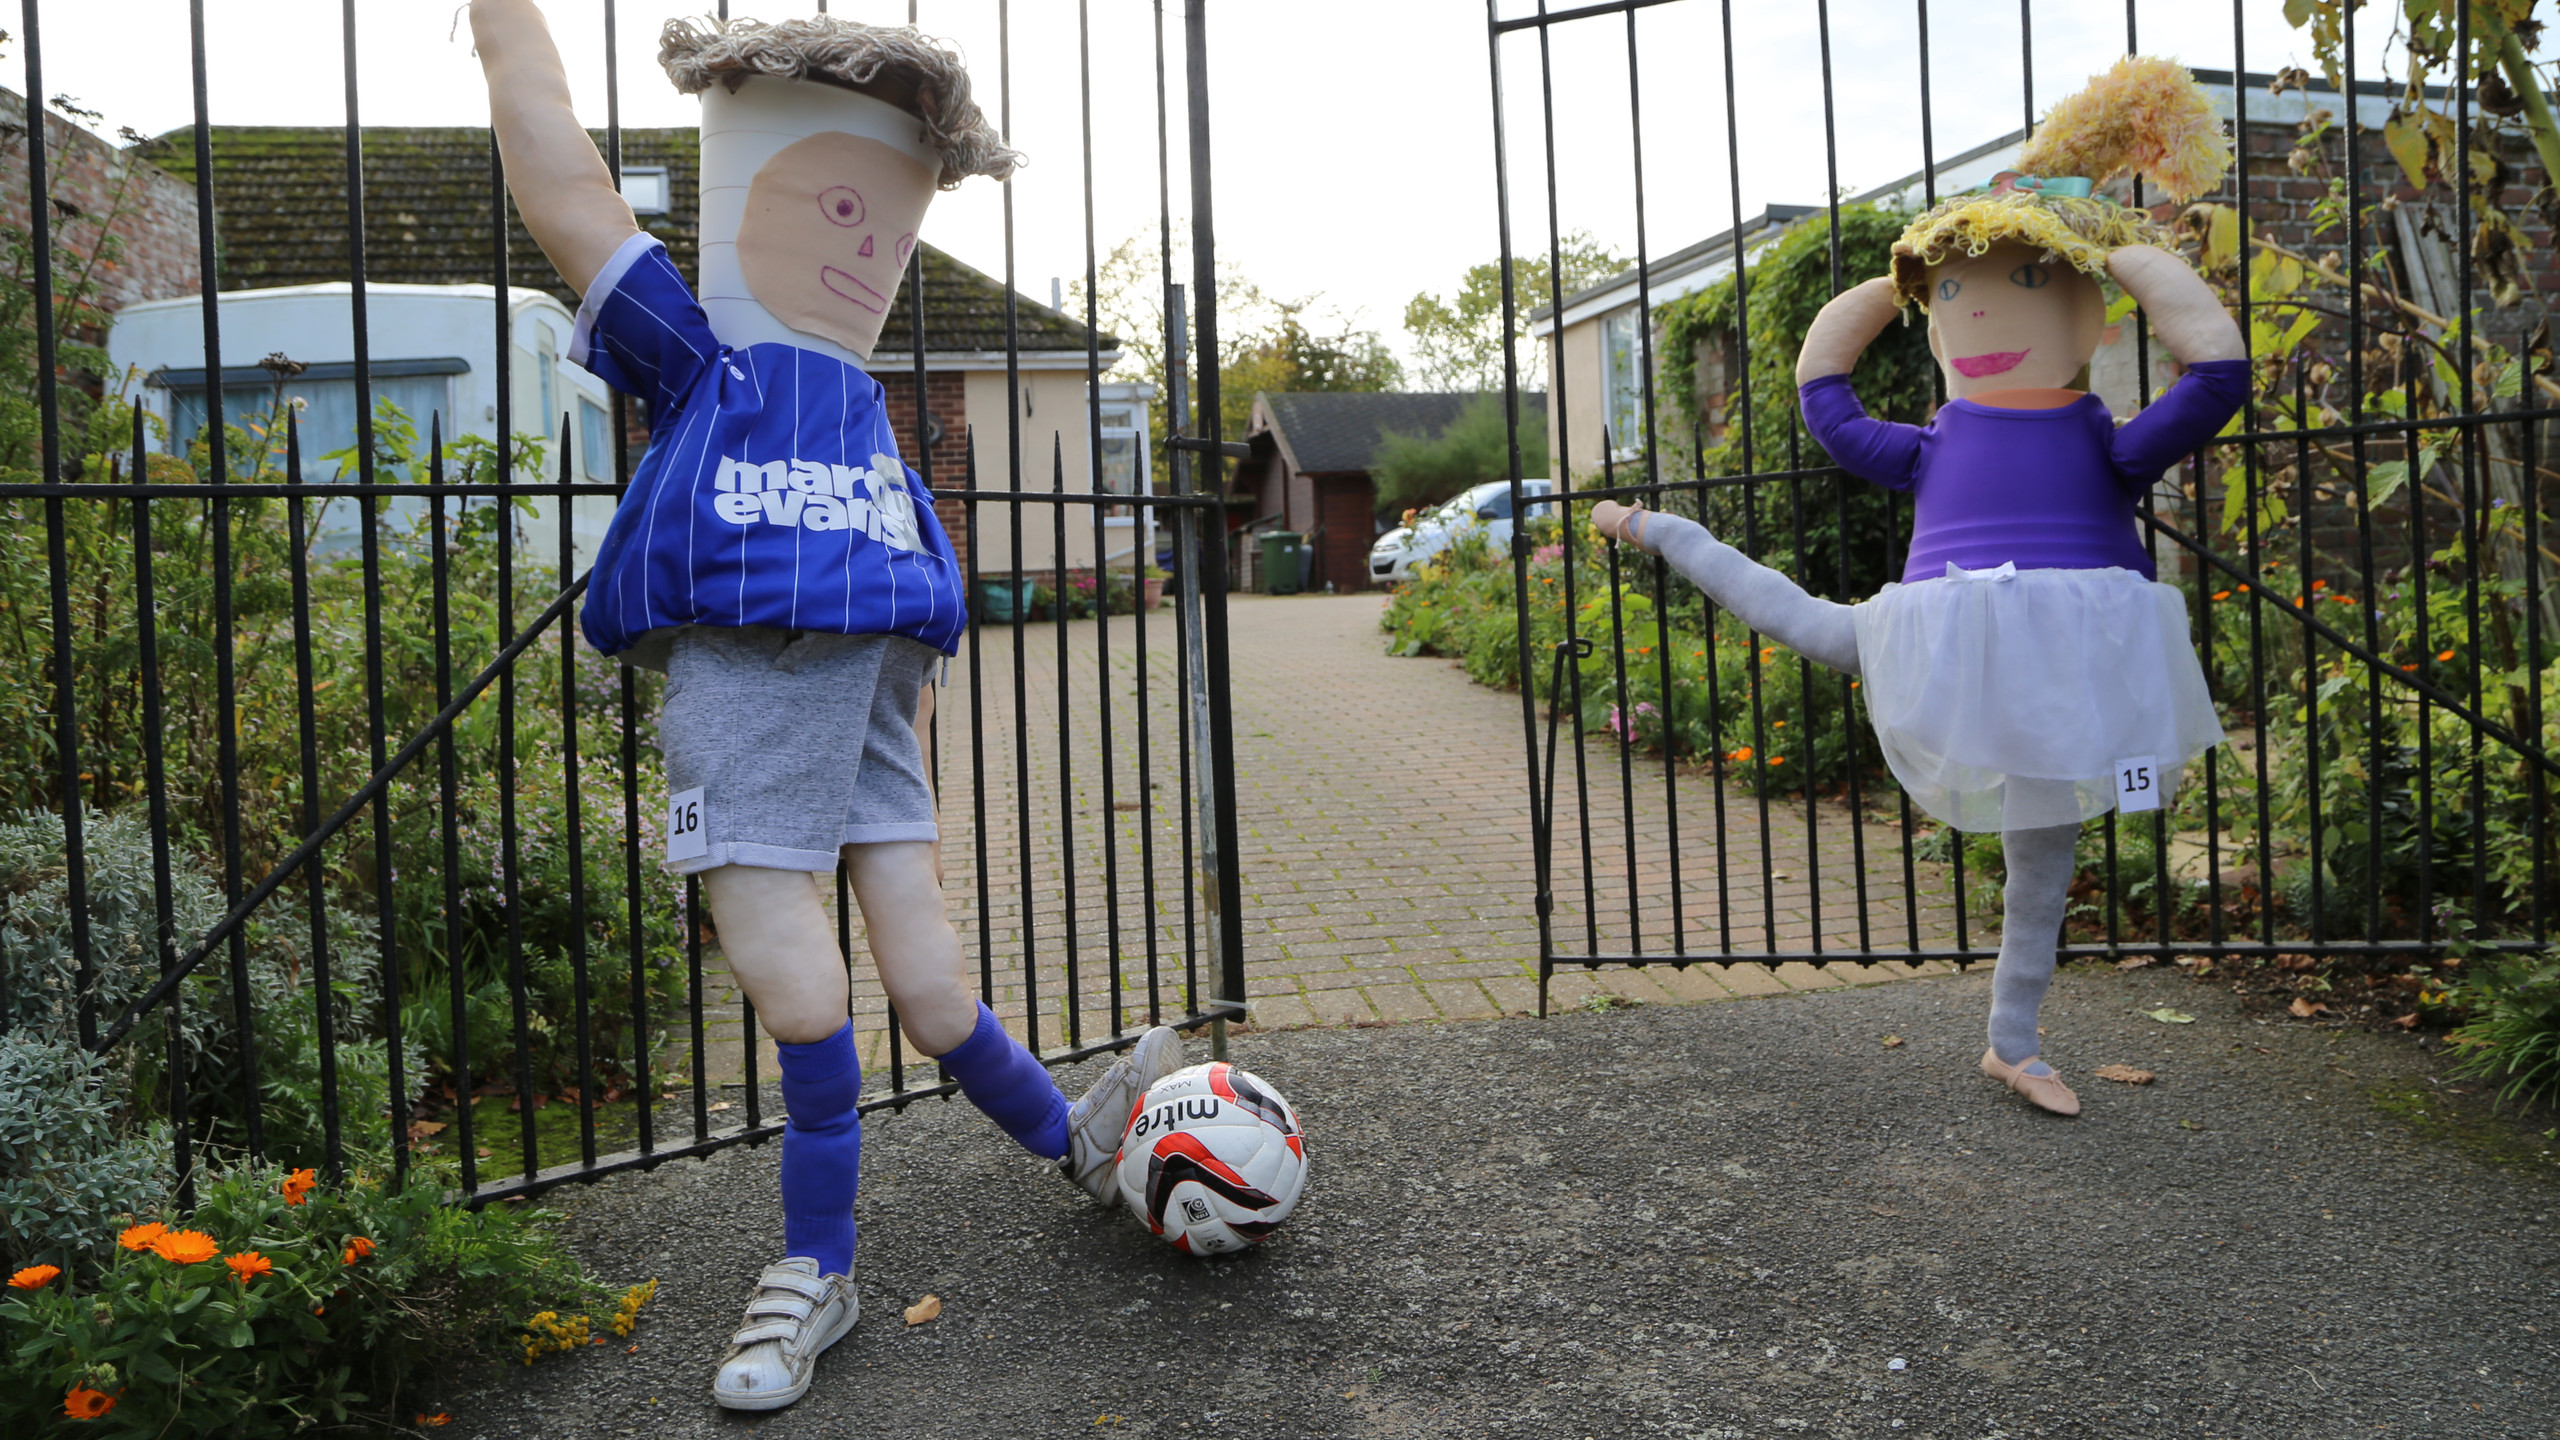 Sporting scarecrows